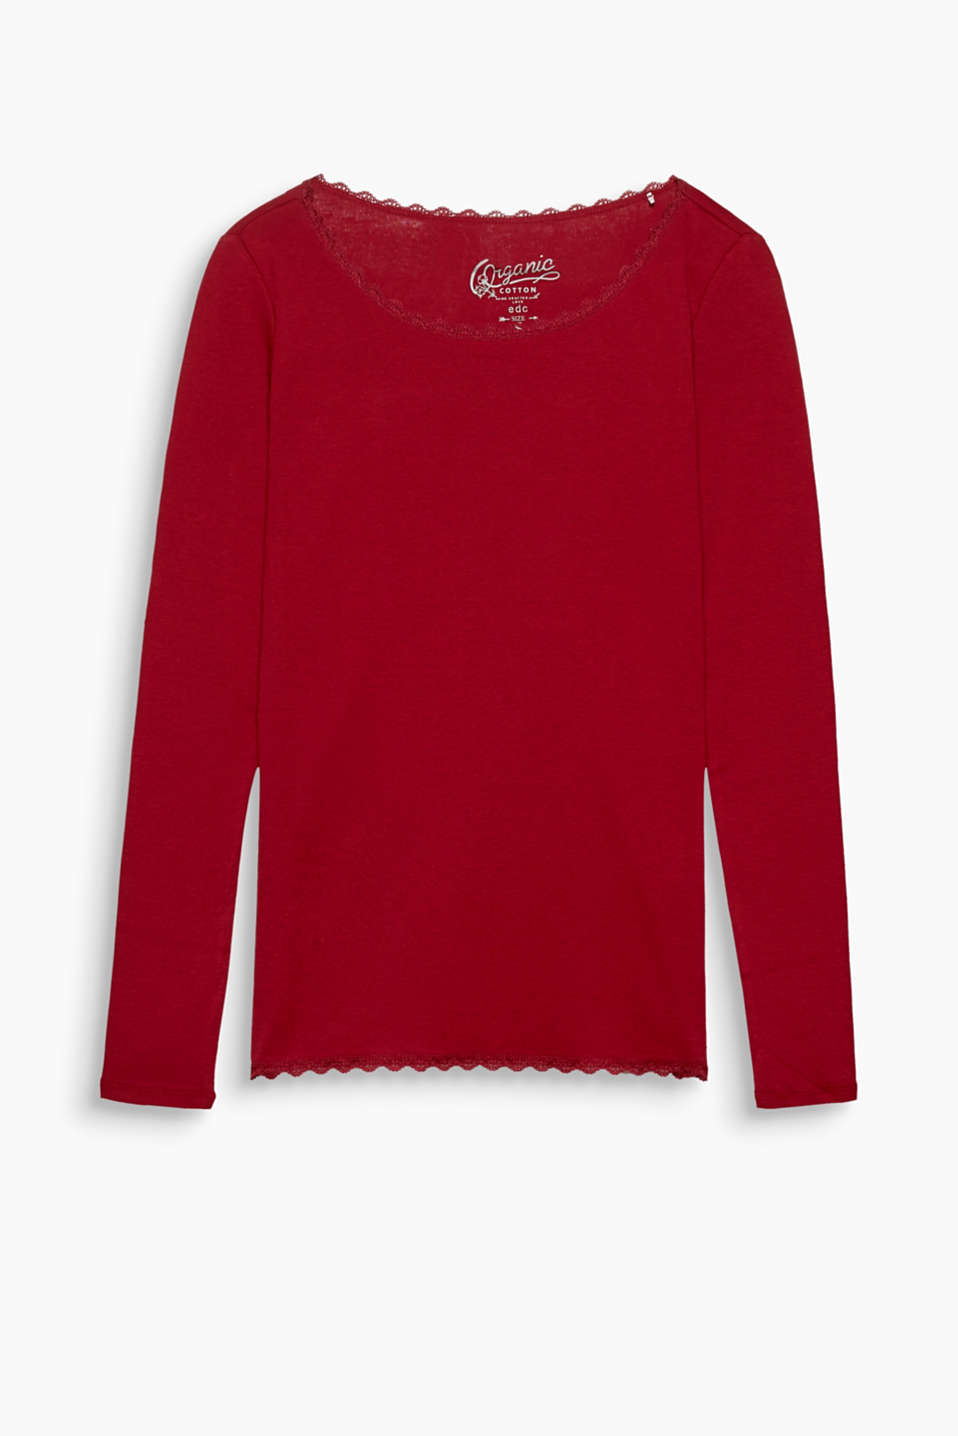 Refined basic: fitted long sleeve top with scalloped, delicate lace trims, 100% organic cotton